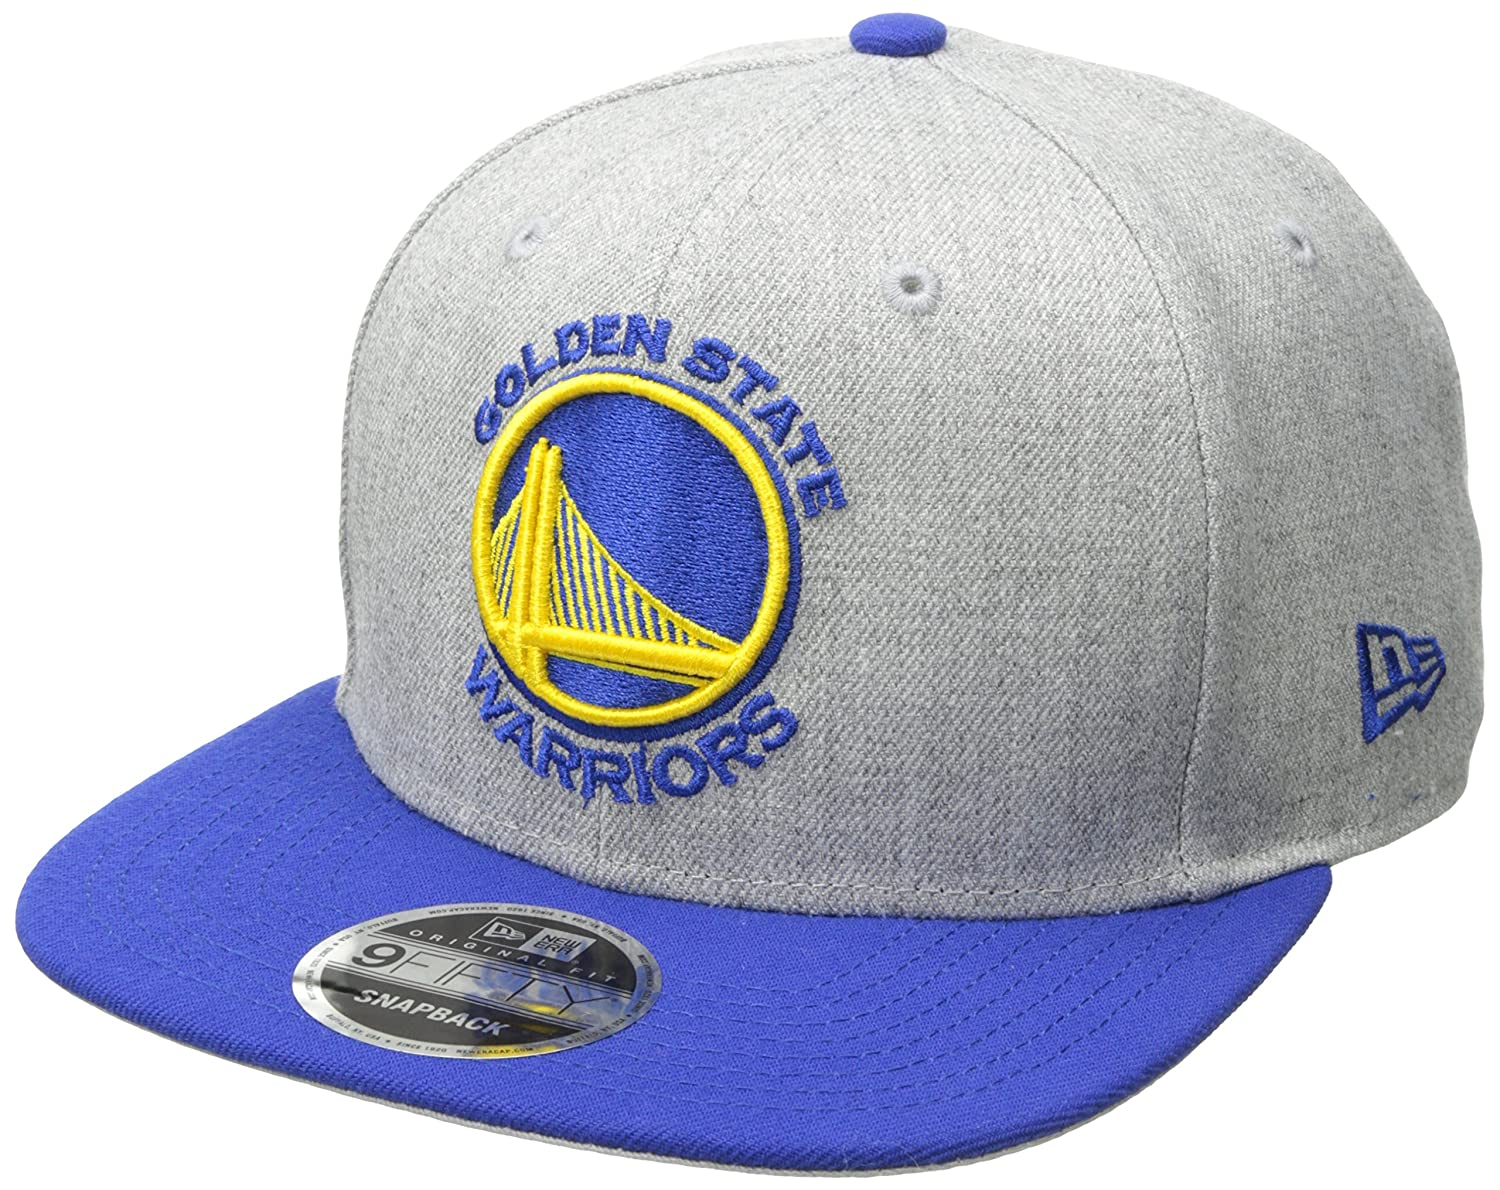 6fb8d6bc Amazon.com : NBA Golden State Warriors Heather Action 9Fifty Original Fit  Snapback Cap, One Size, Gray : Sports & Outdoors